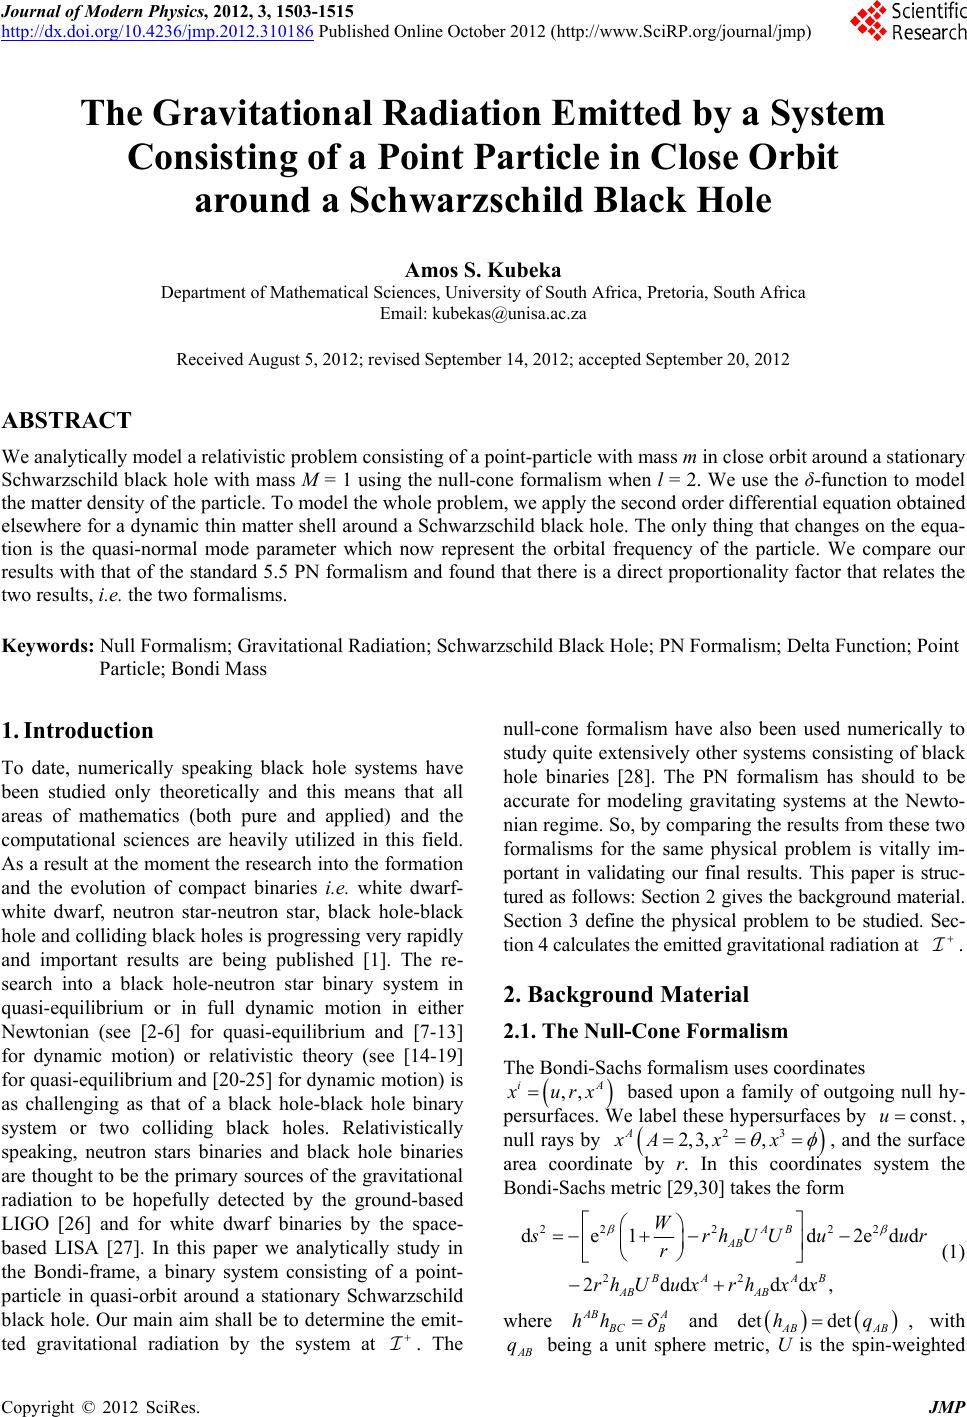 Journal Of Modern Physics 2012 3 1503 1515